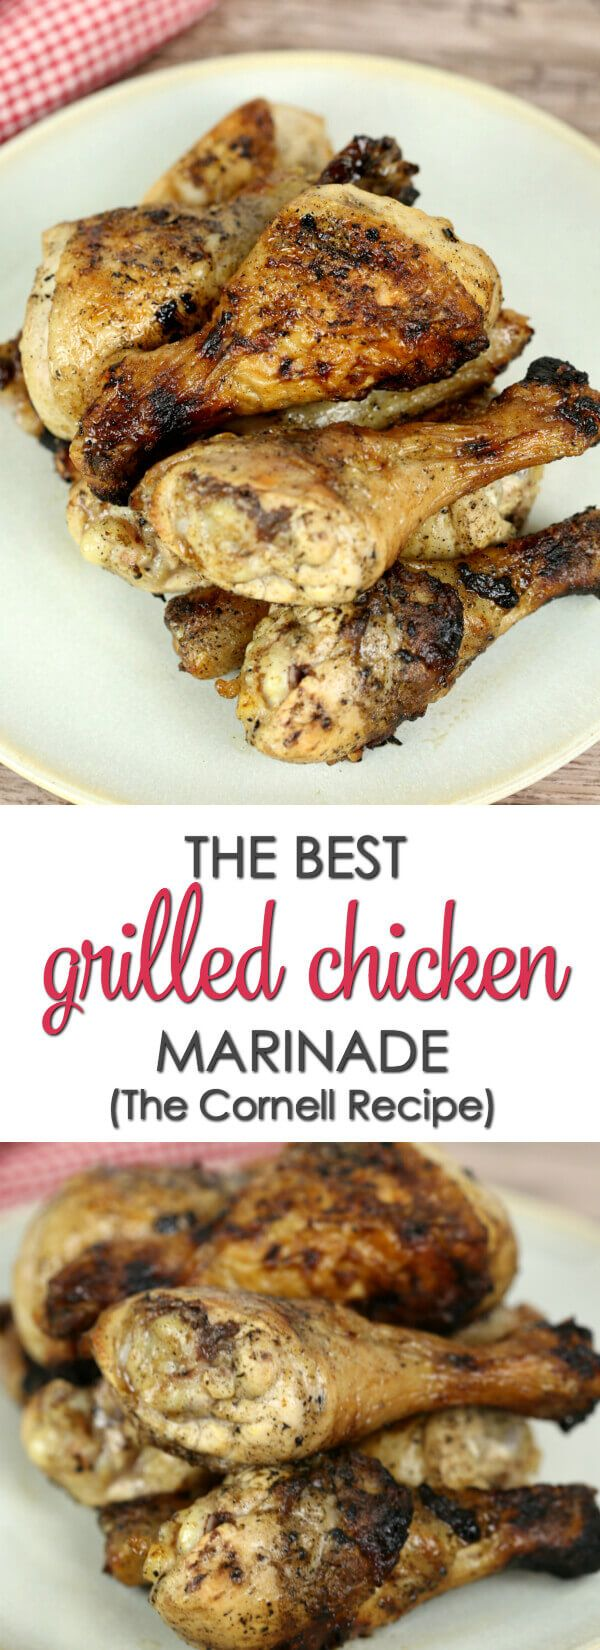 The Best Grilled Chicken Marinade -  1 egg 1 cup vegetable oil 1 cups cider vinegar 2 tablespoons salt 1 tablespoon poultry seasoning 1/2 teaspoon ground black pepper 12 chicken legs